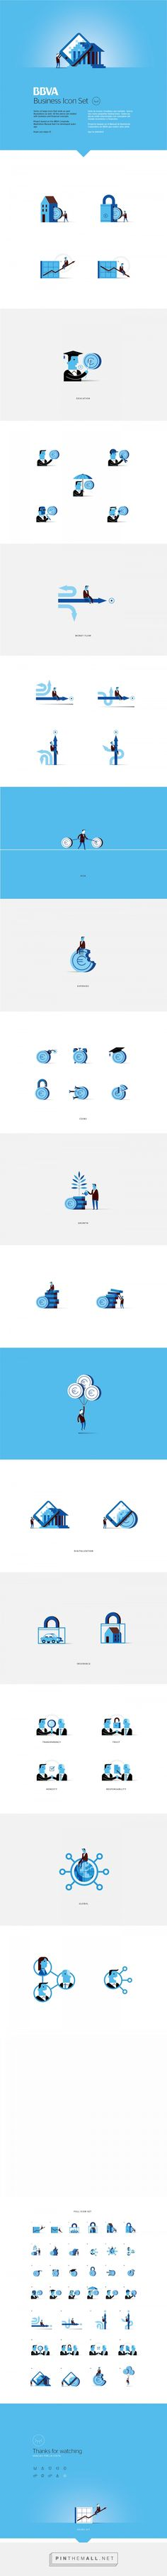 BBVA Business Icons on Behance - created